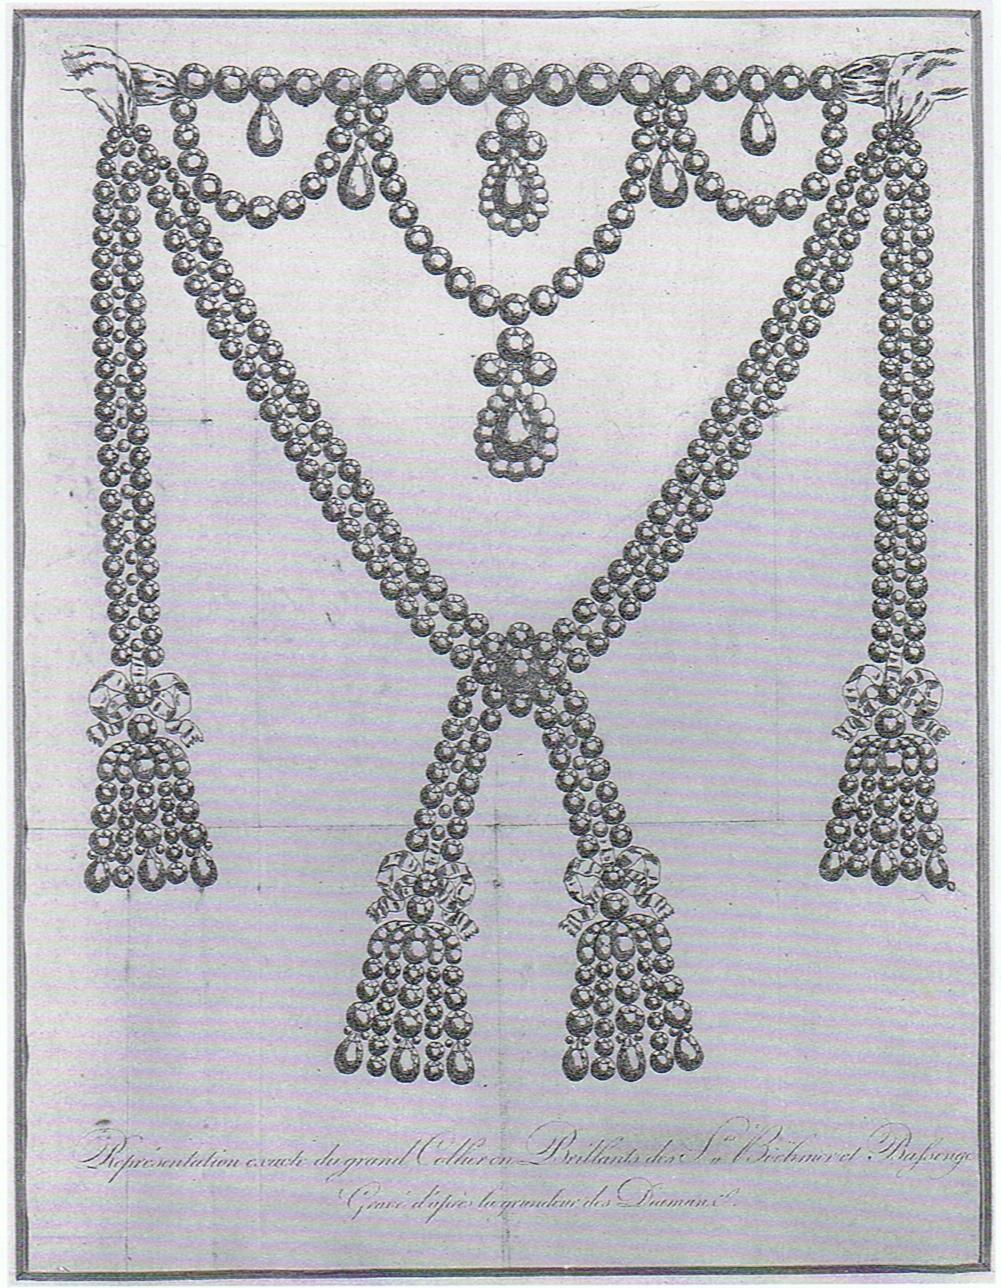 The diamond necklace